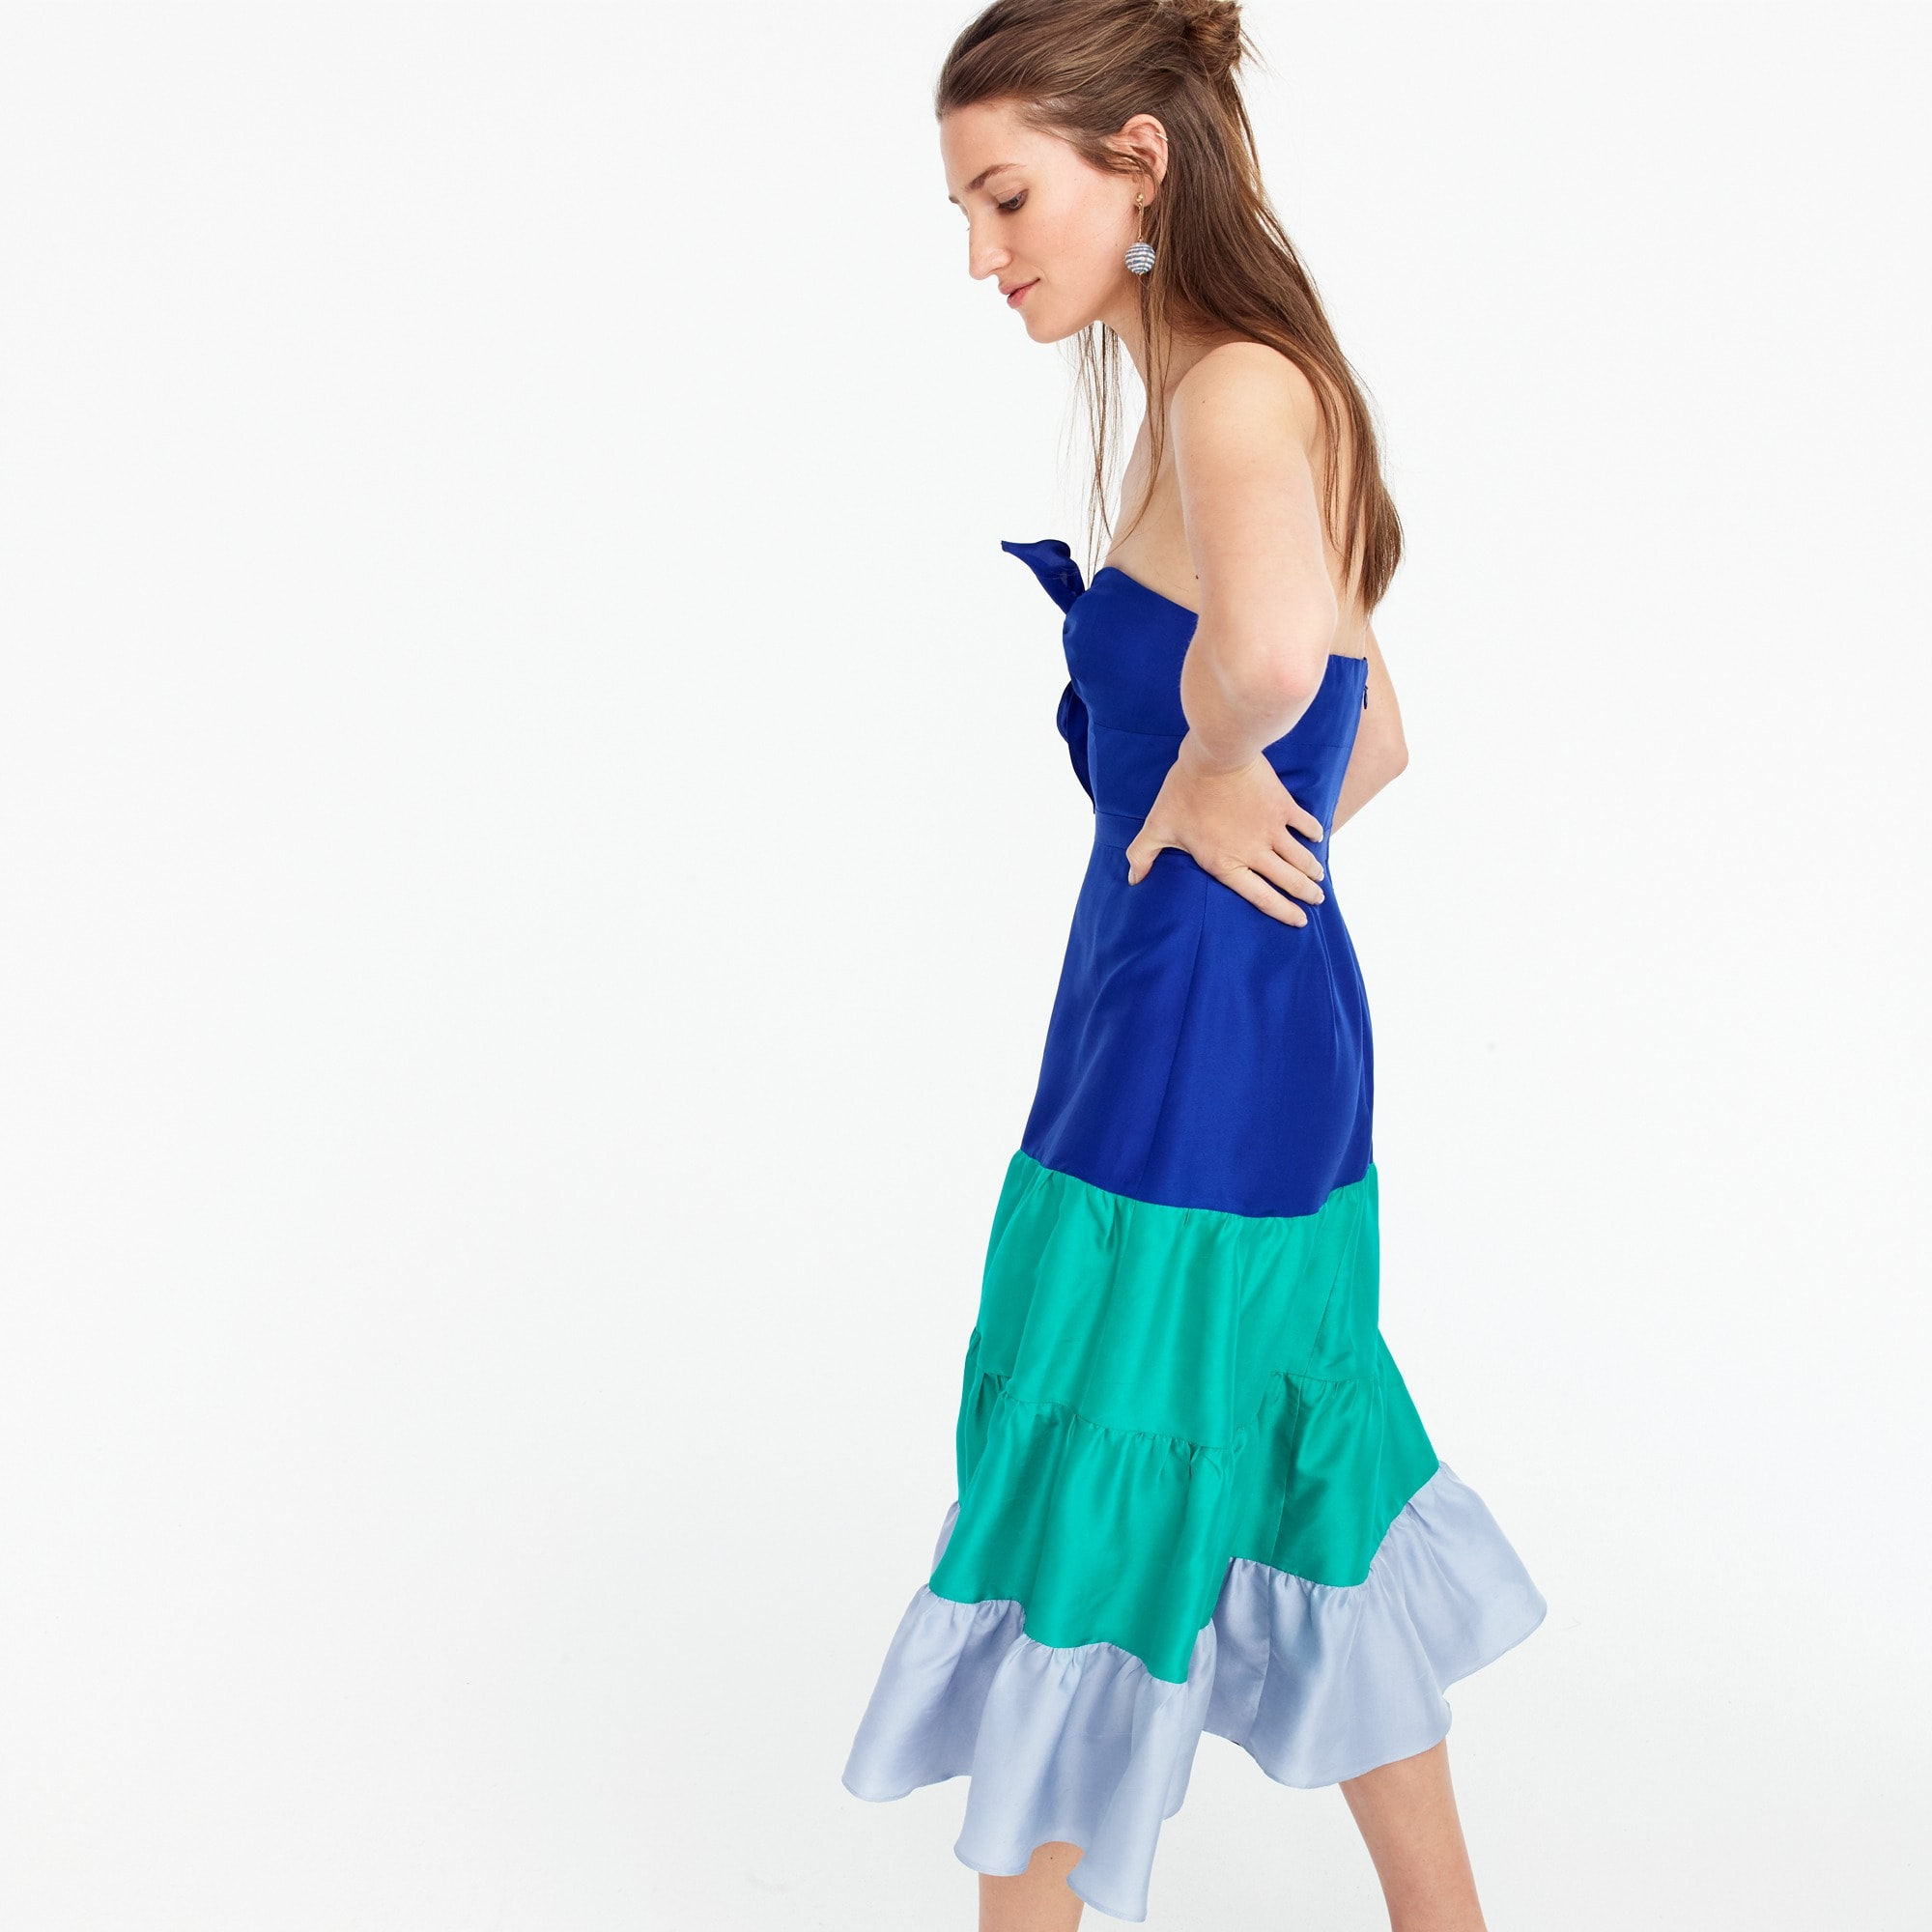 Spaghetti-strap ruffle dress in silk shantung women dresses c